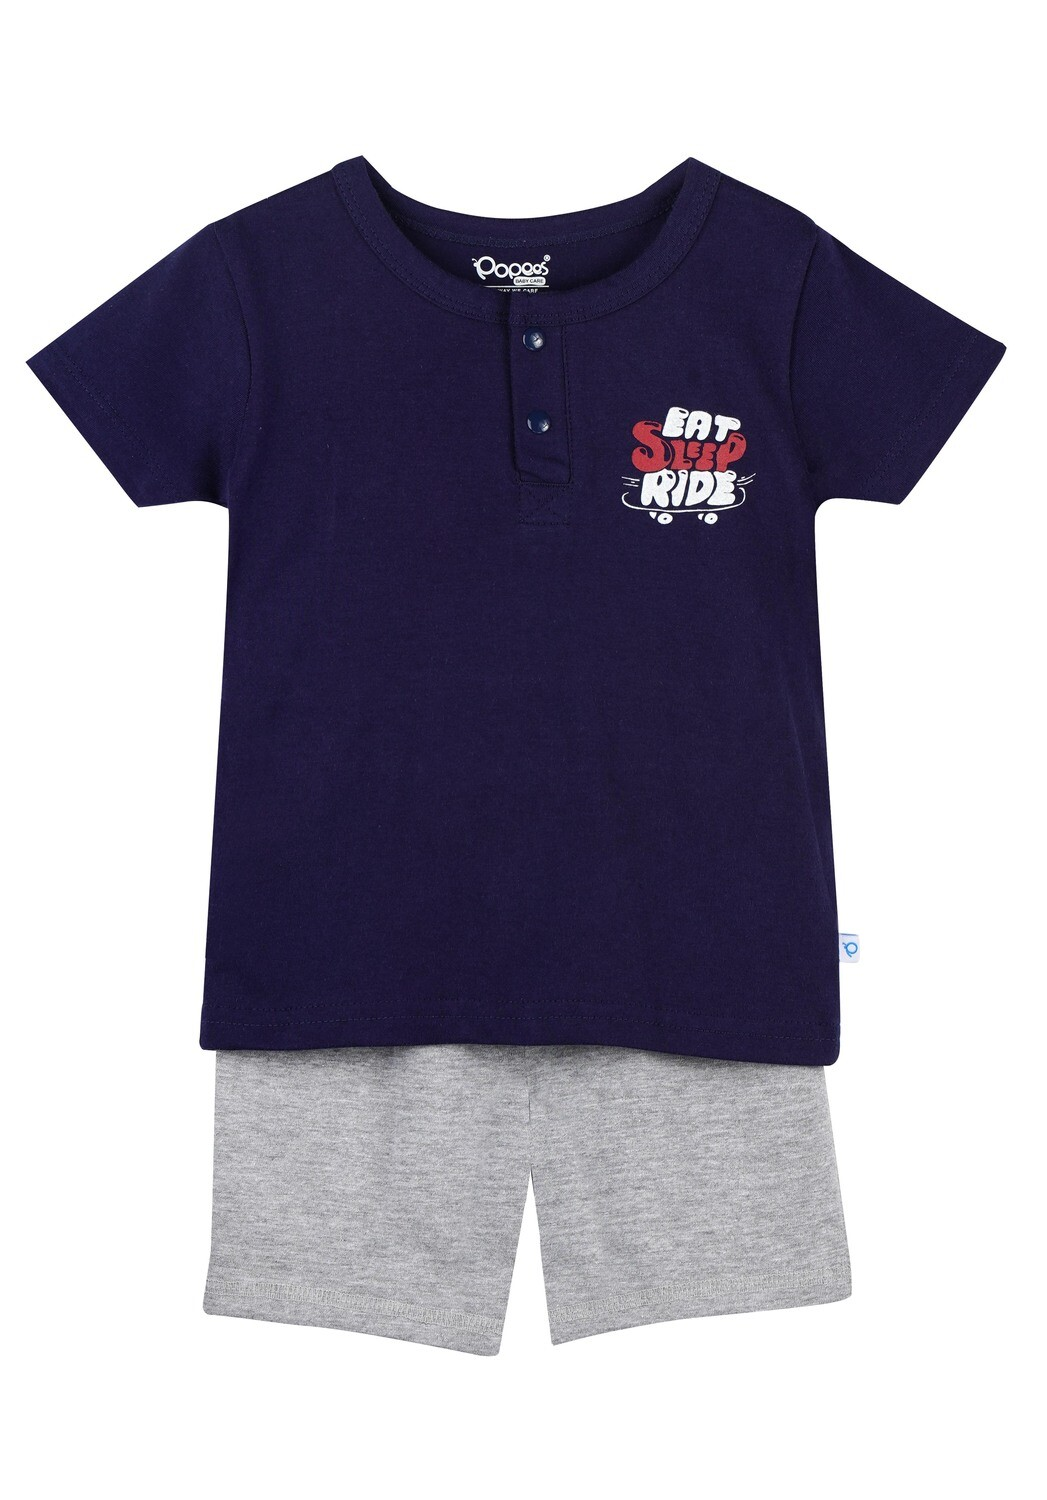 LENIN PEACOAT NAVY Half Sleeve Front Half Open Top and Trouser SINGLE JERSEY for Baby Boys